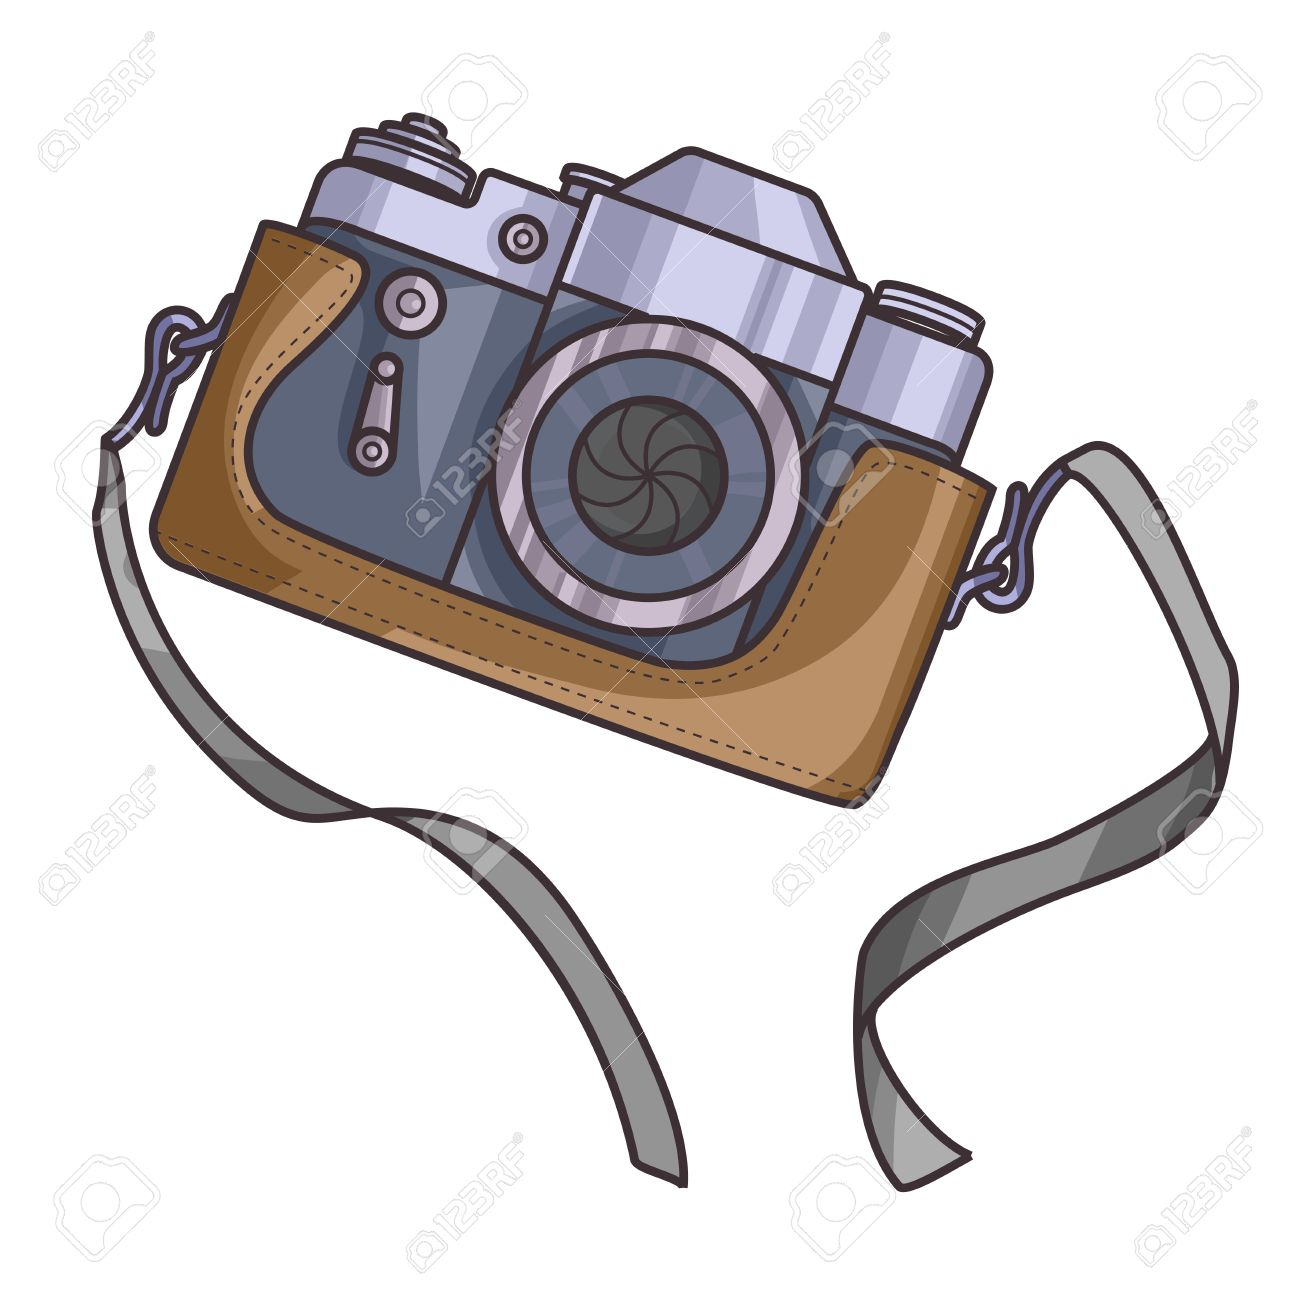 Retro Or Vintage Camera Cartoon Flat Style On A White Background Old With Strap